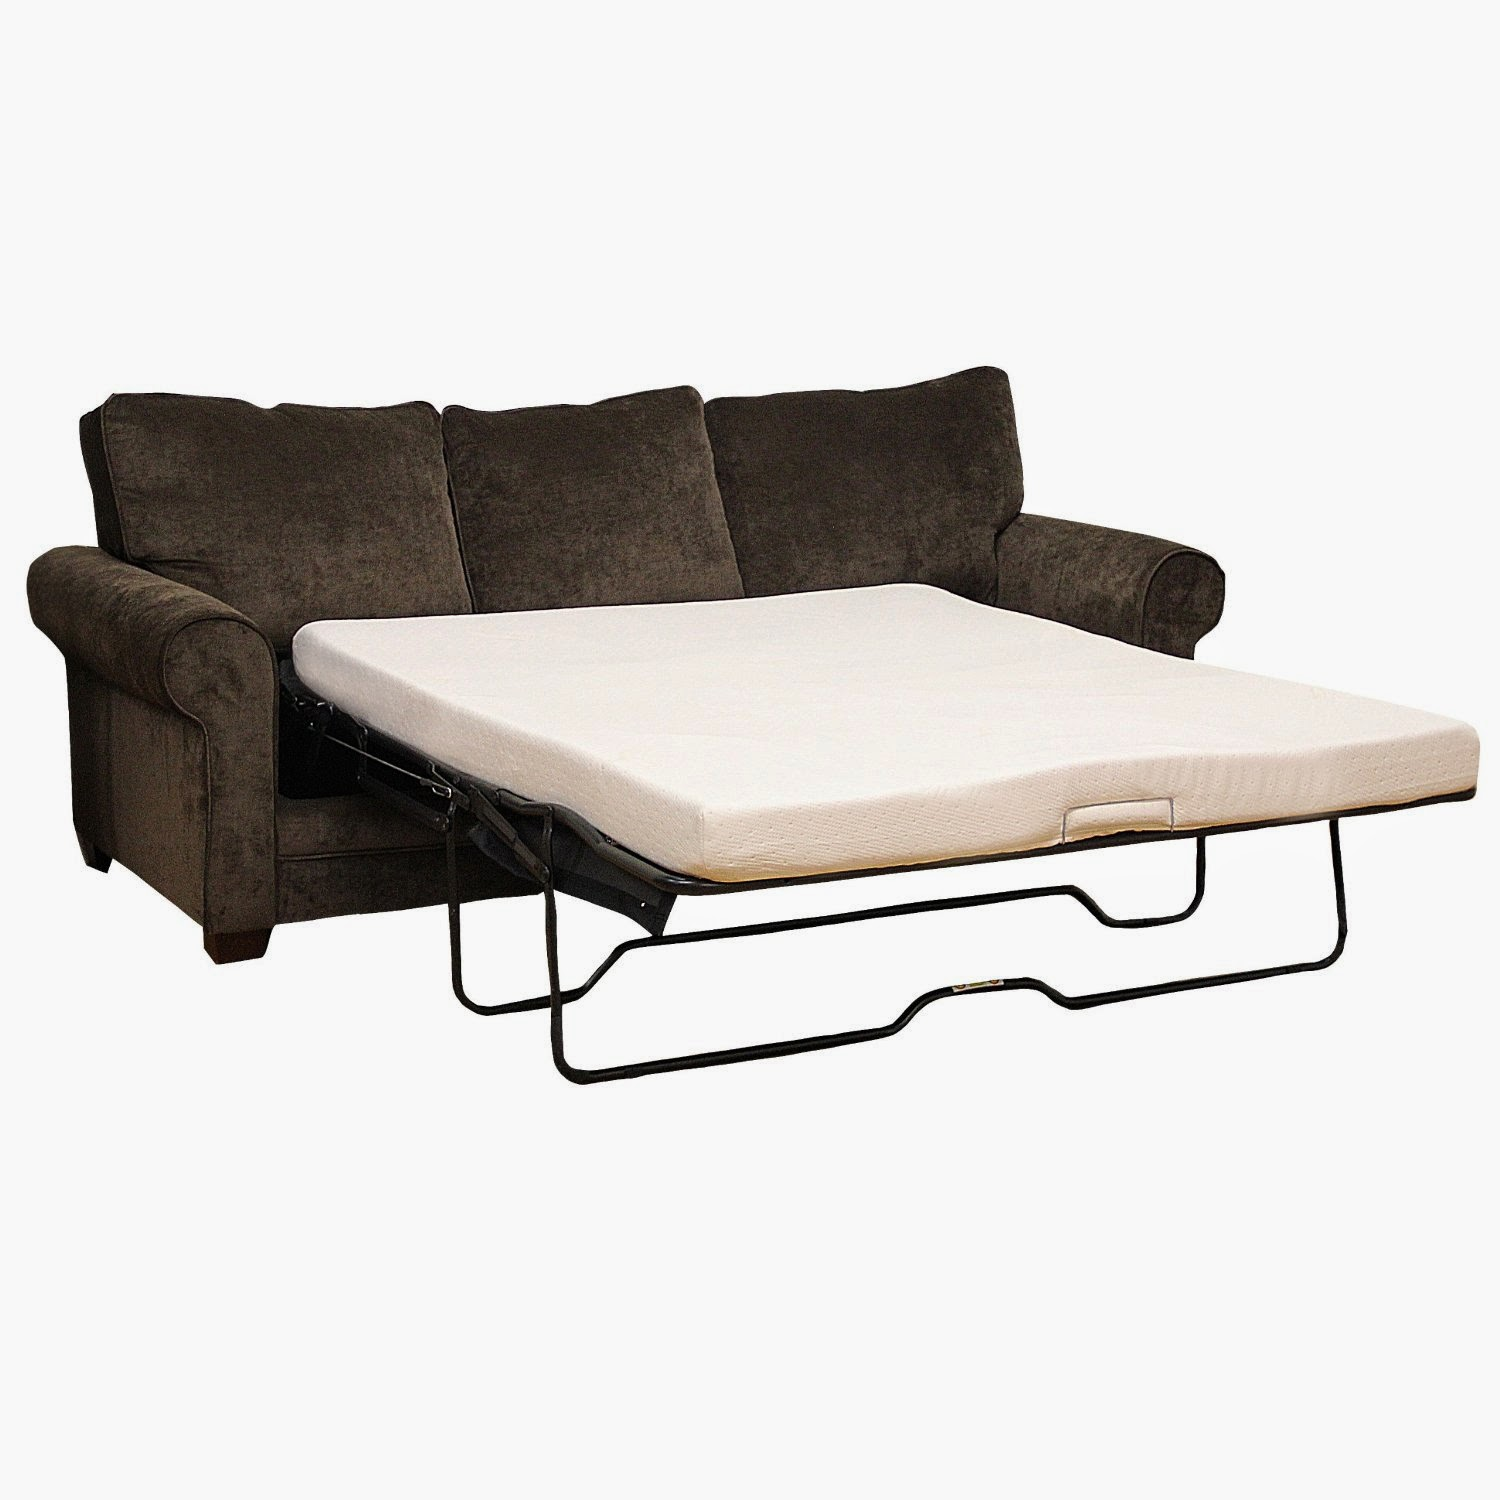 Fold Out Chair Fold Out Couch Fold Out Couch Bed